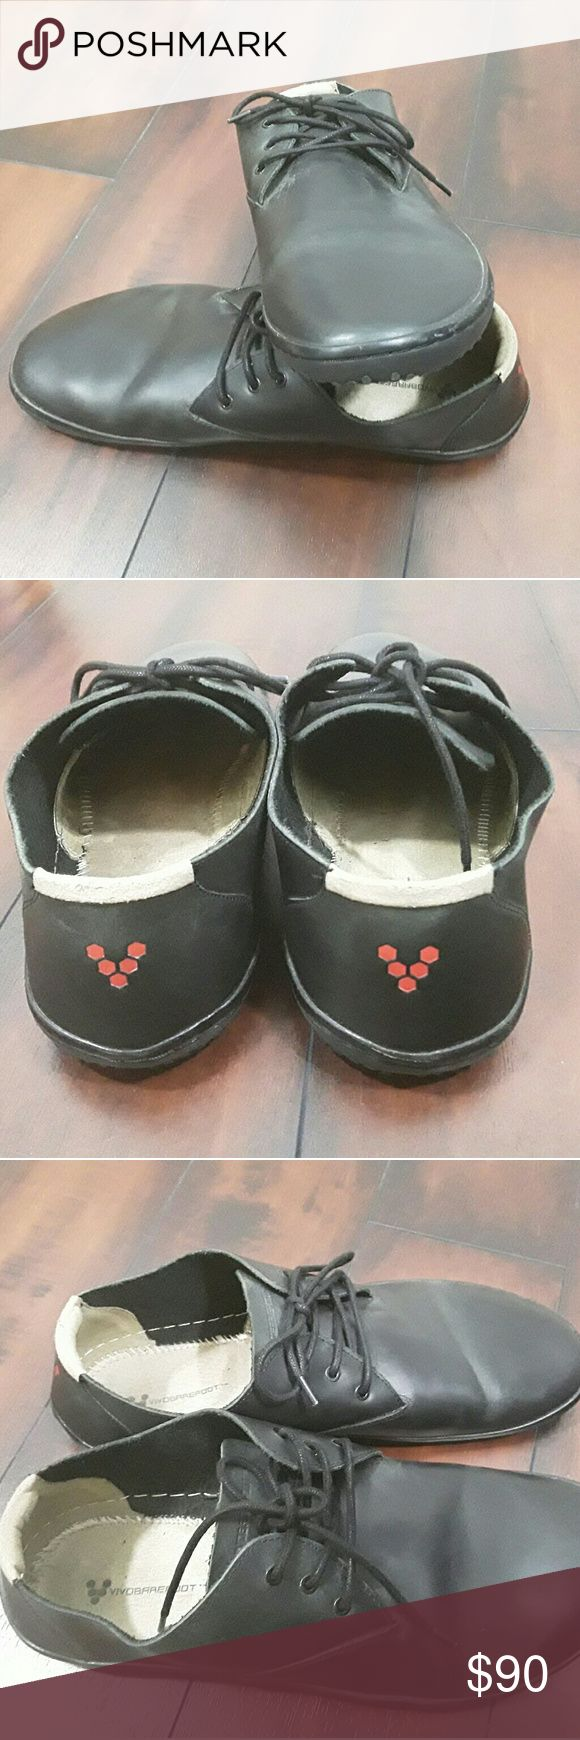 Vivobarefoot patented men leather shoes size 46 EU Vivobarefoot patented men leather shoes black size 46 EU  12 US.  Good used condition. Non smoking house. vivobarefoot  Shoes Sneakers